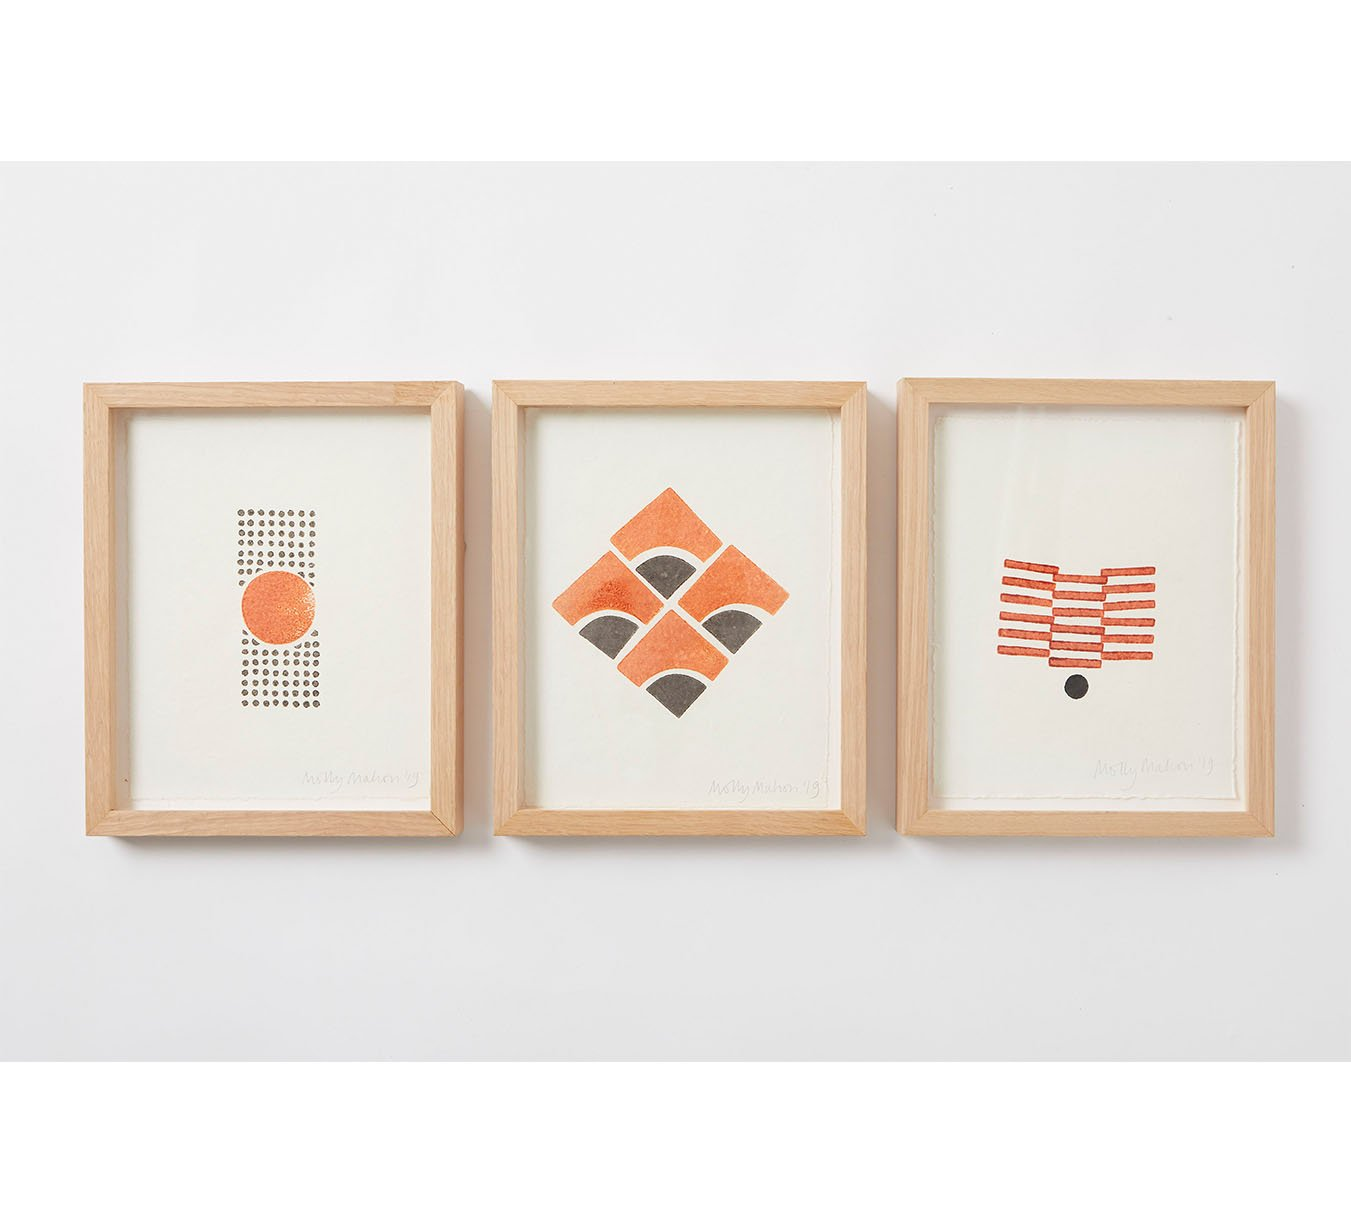 Framed - Cotton Paper Print - Trio 2